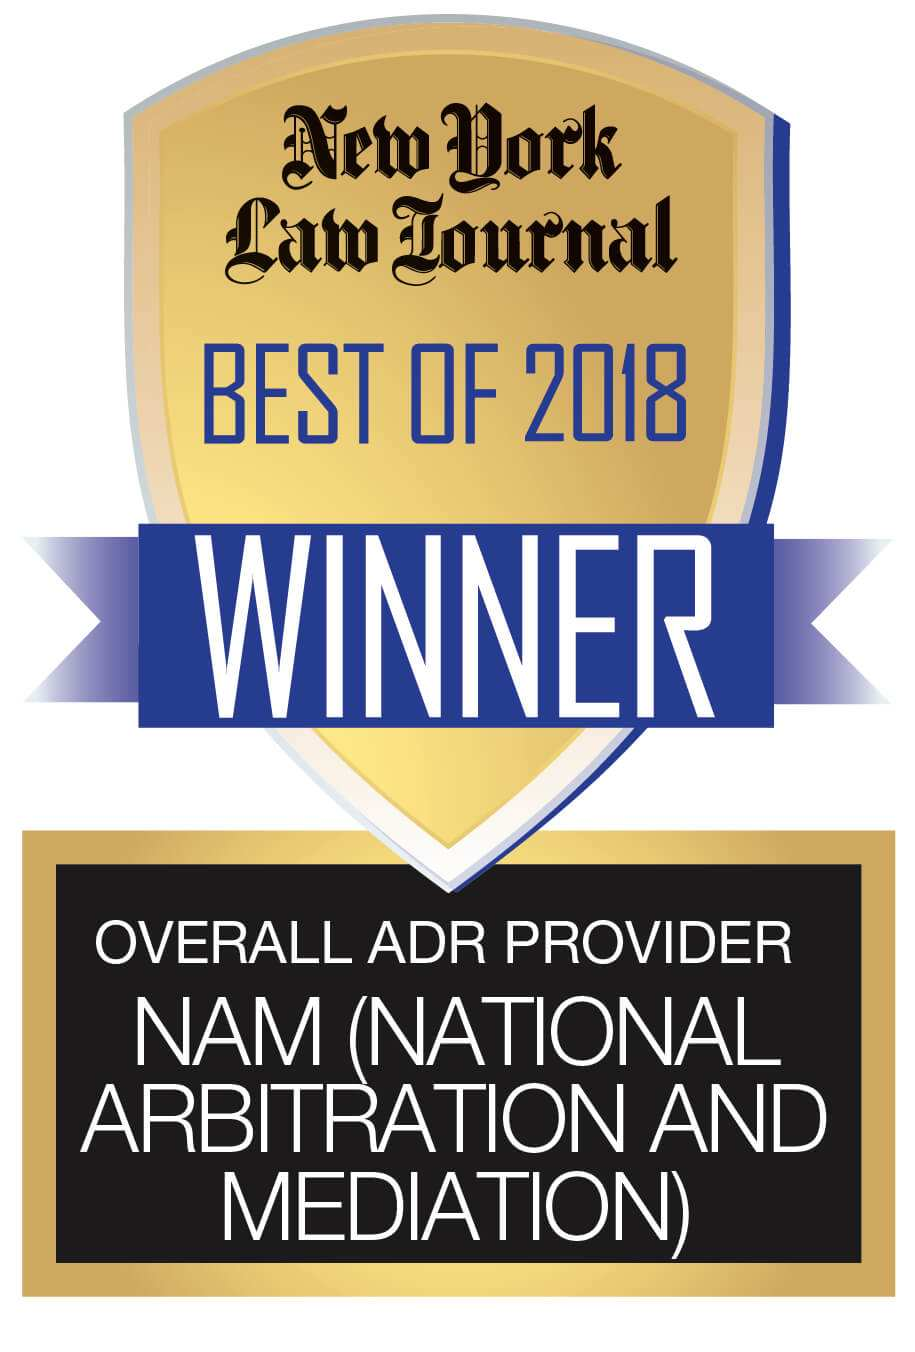 NAM (National Arbitration and Mediation) Badge Best of 2018 Winner Overall ADR Provider New York Law Journal